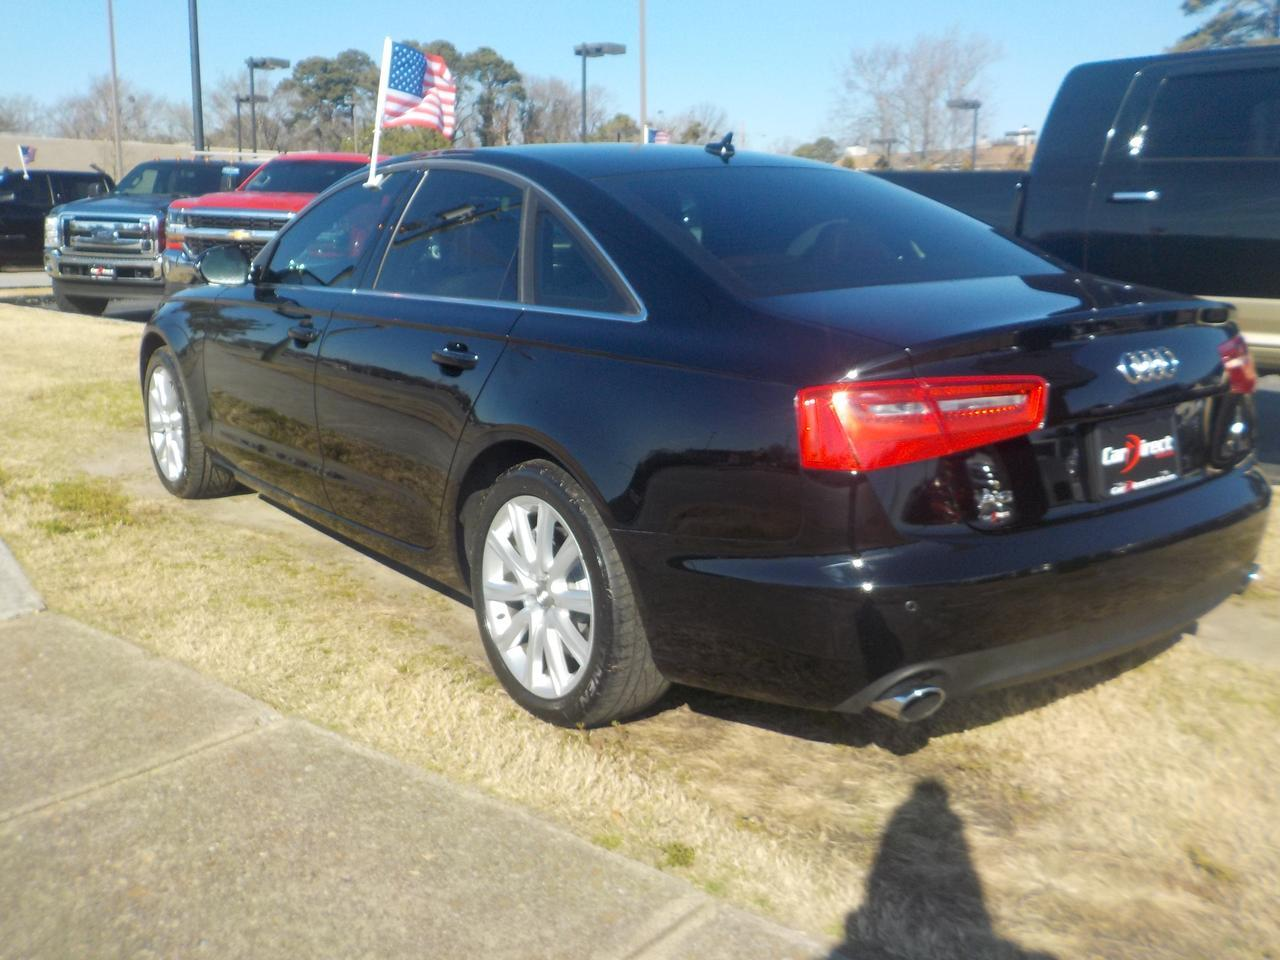 2014 AUDI A6 QUATTRO PREMIUM+, LEATHER HEATED SEATS, BOSE SOUND, NAVIGATION, BACKUP CAM, SUNROOF, ONLY 86K MILES! Virginia Beach VA